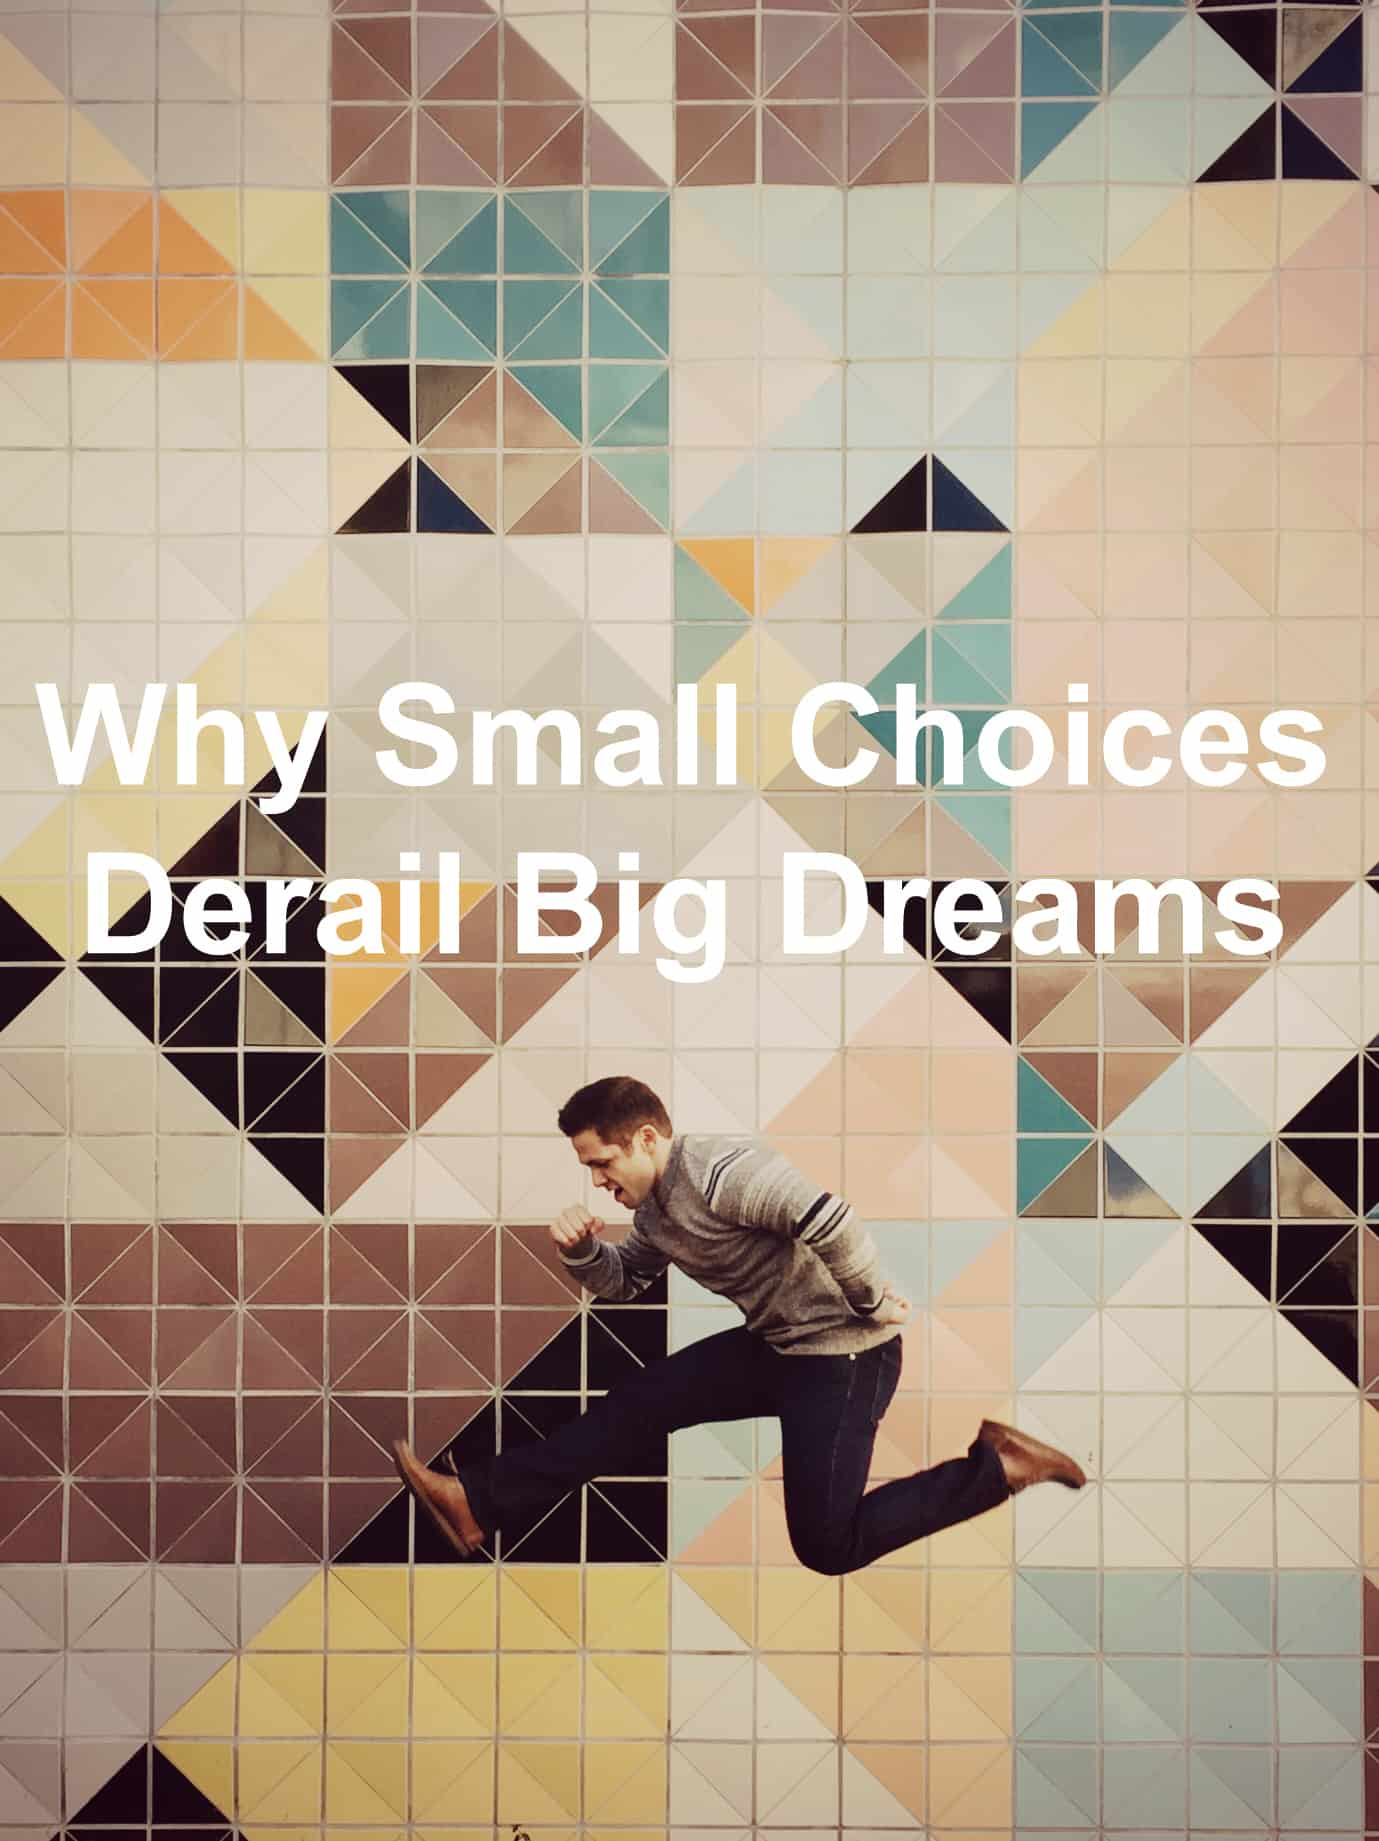 Small choices determine the course of our lives